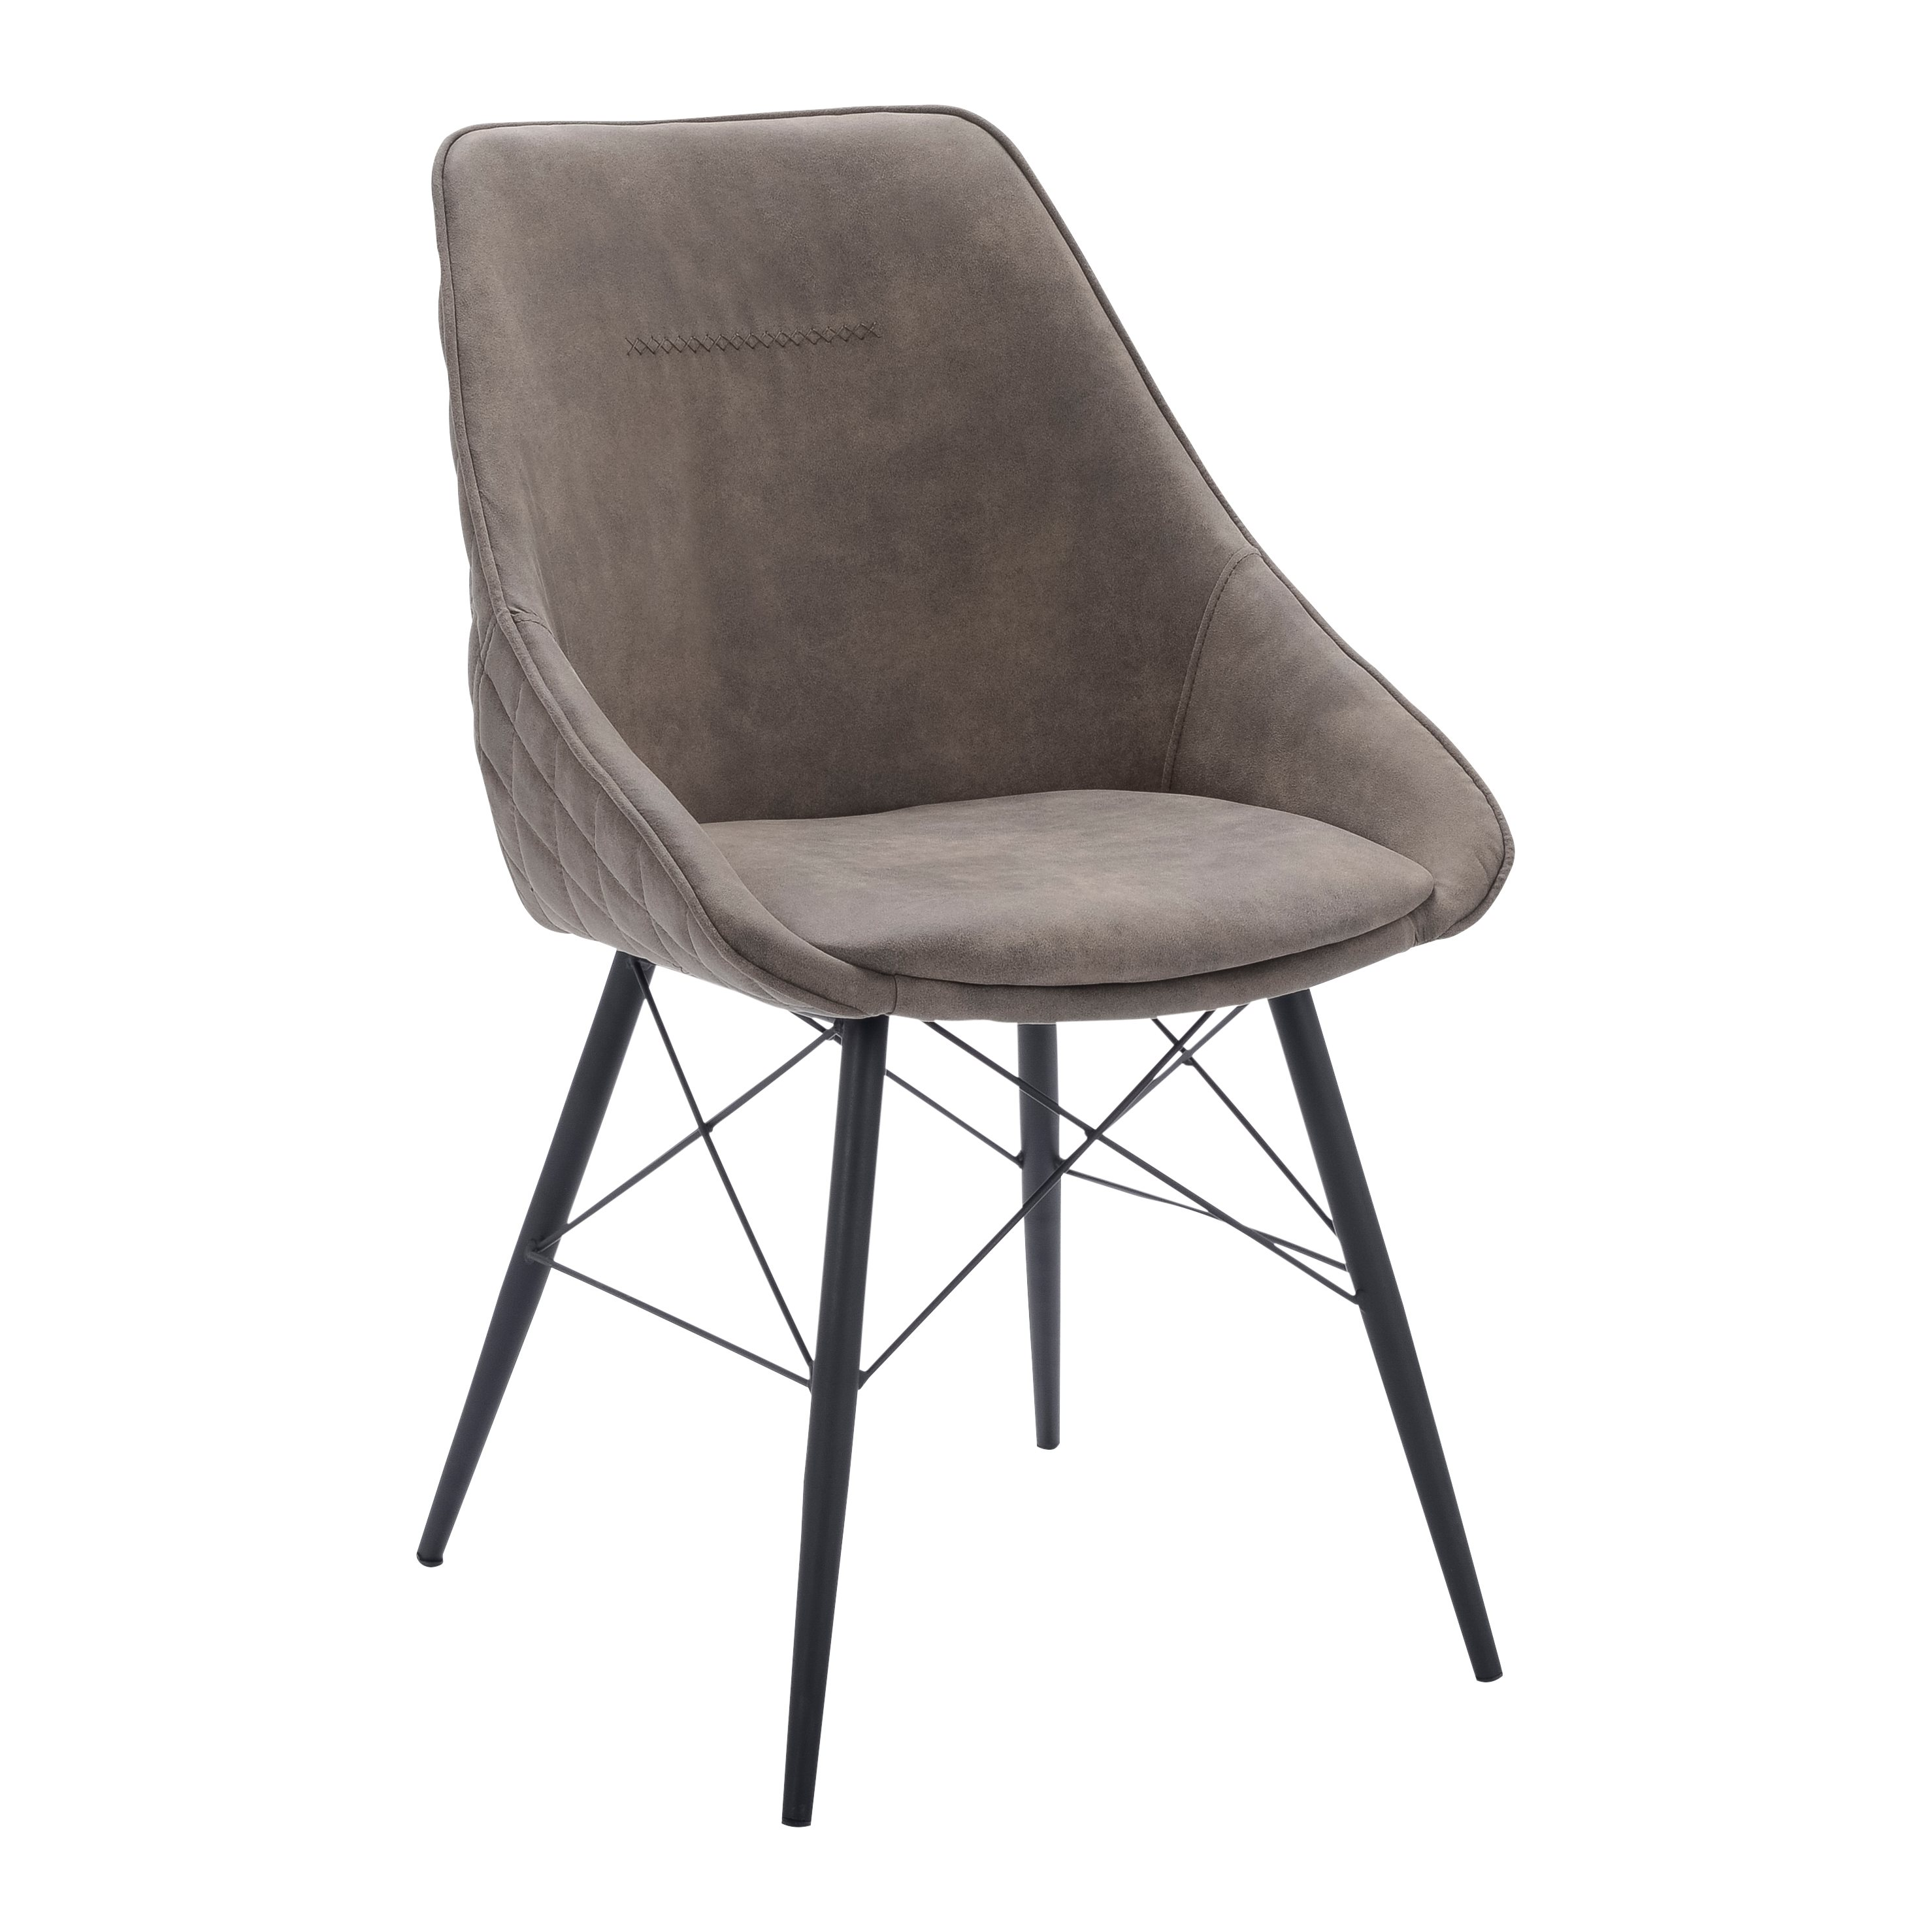 Polyester dining chair comfortable china design